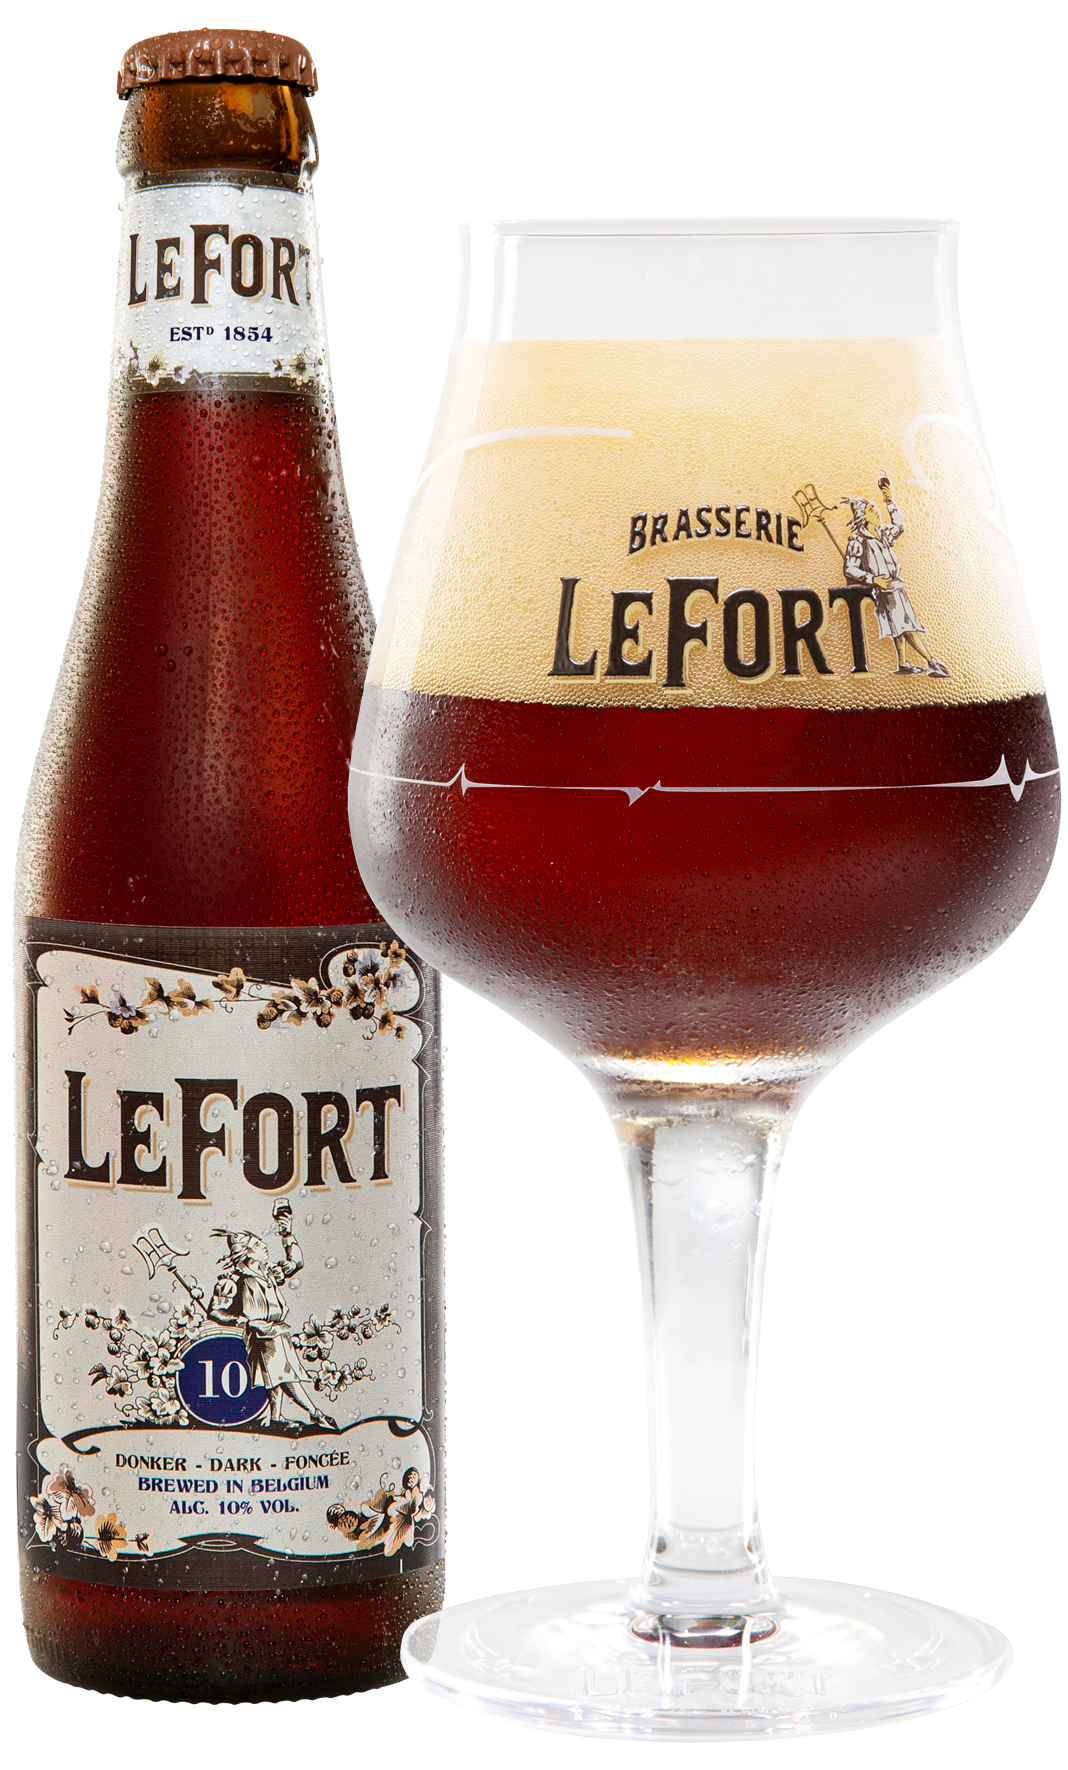 LeFort bottle + glass 2020 website.png